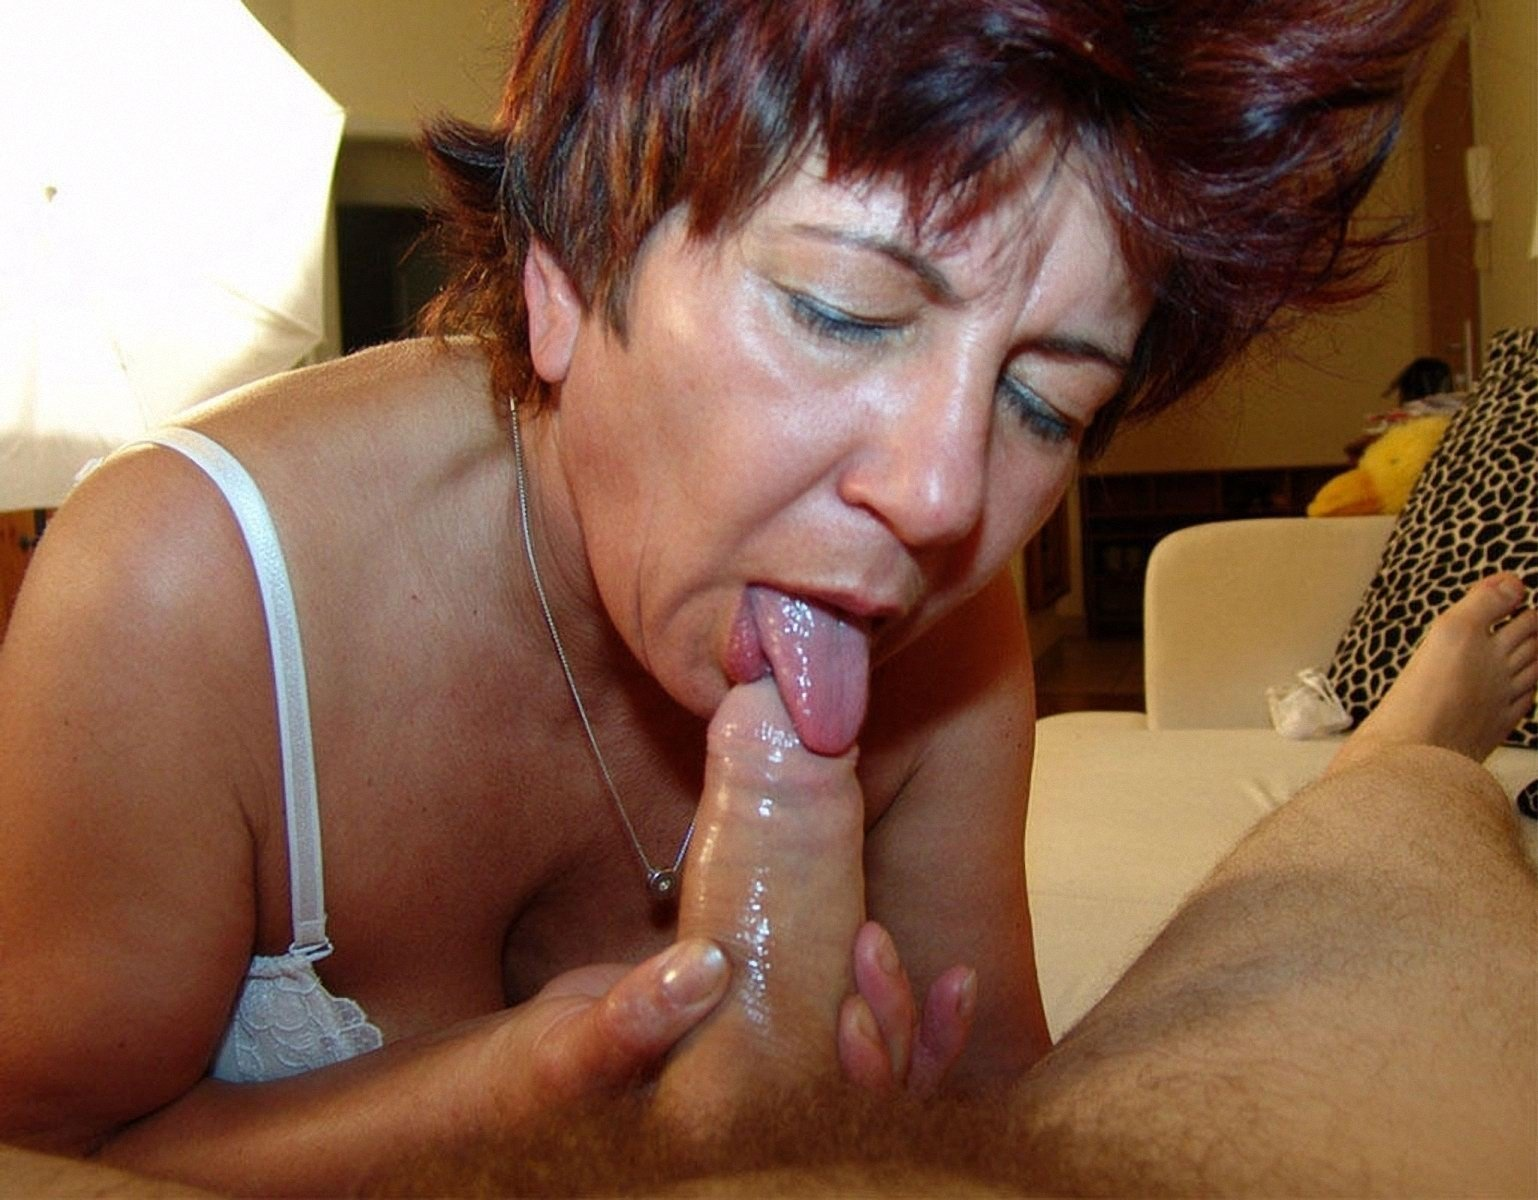 Passionate mom sucks son till cum runs out of her mouth porn images